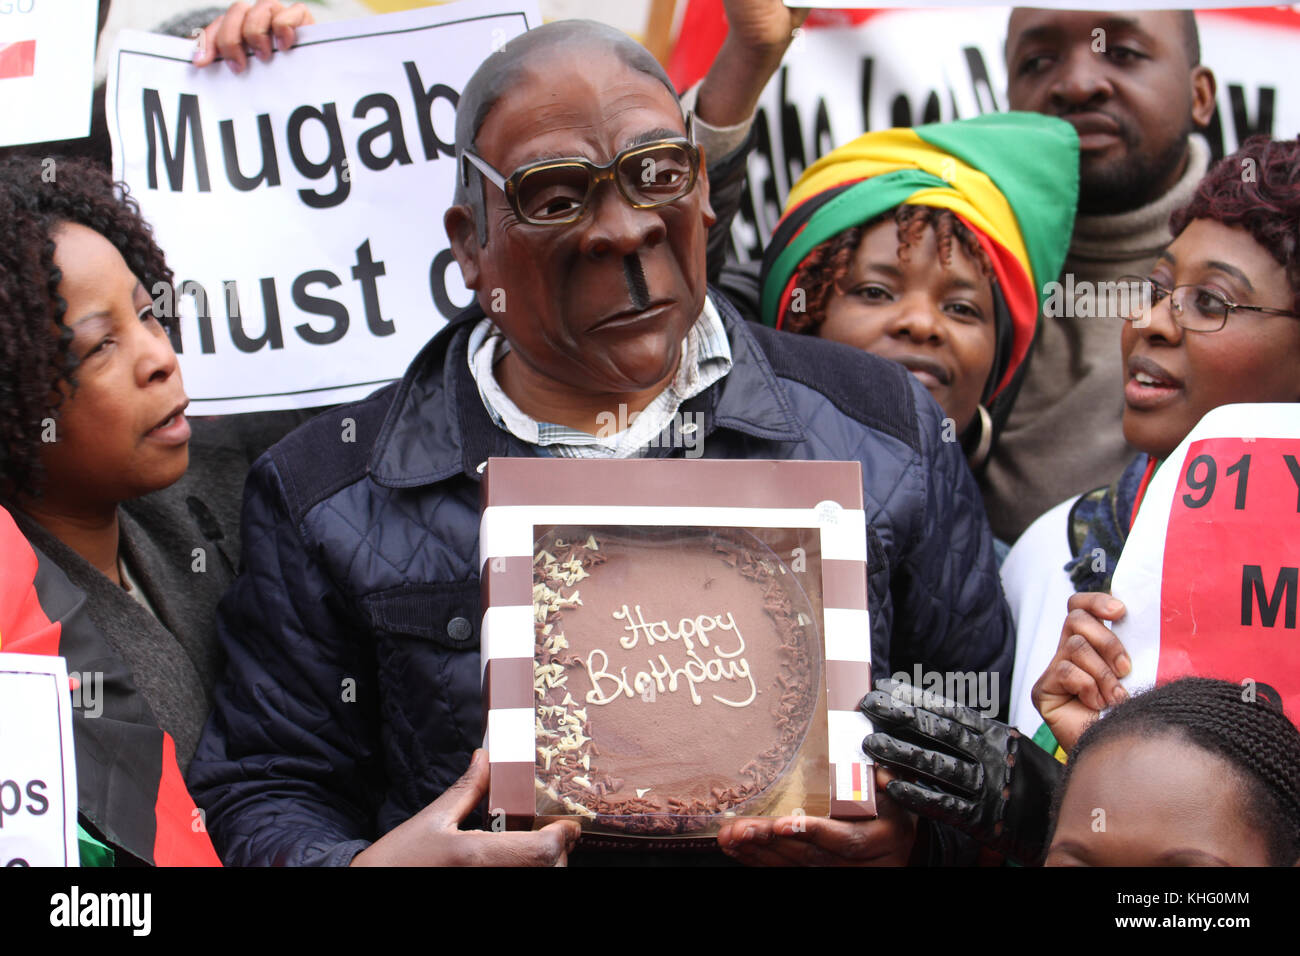 London, UK. 21 February 2015: A mand with a Mugabe mask hold a birthday cake outside Zimbabwe House in central London - Stock Image